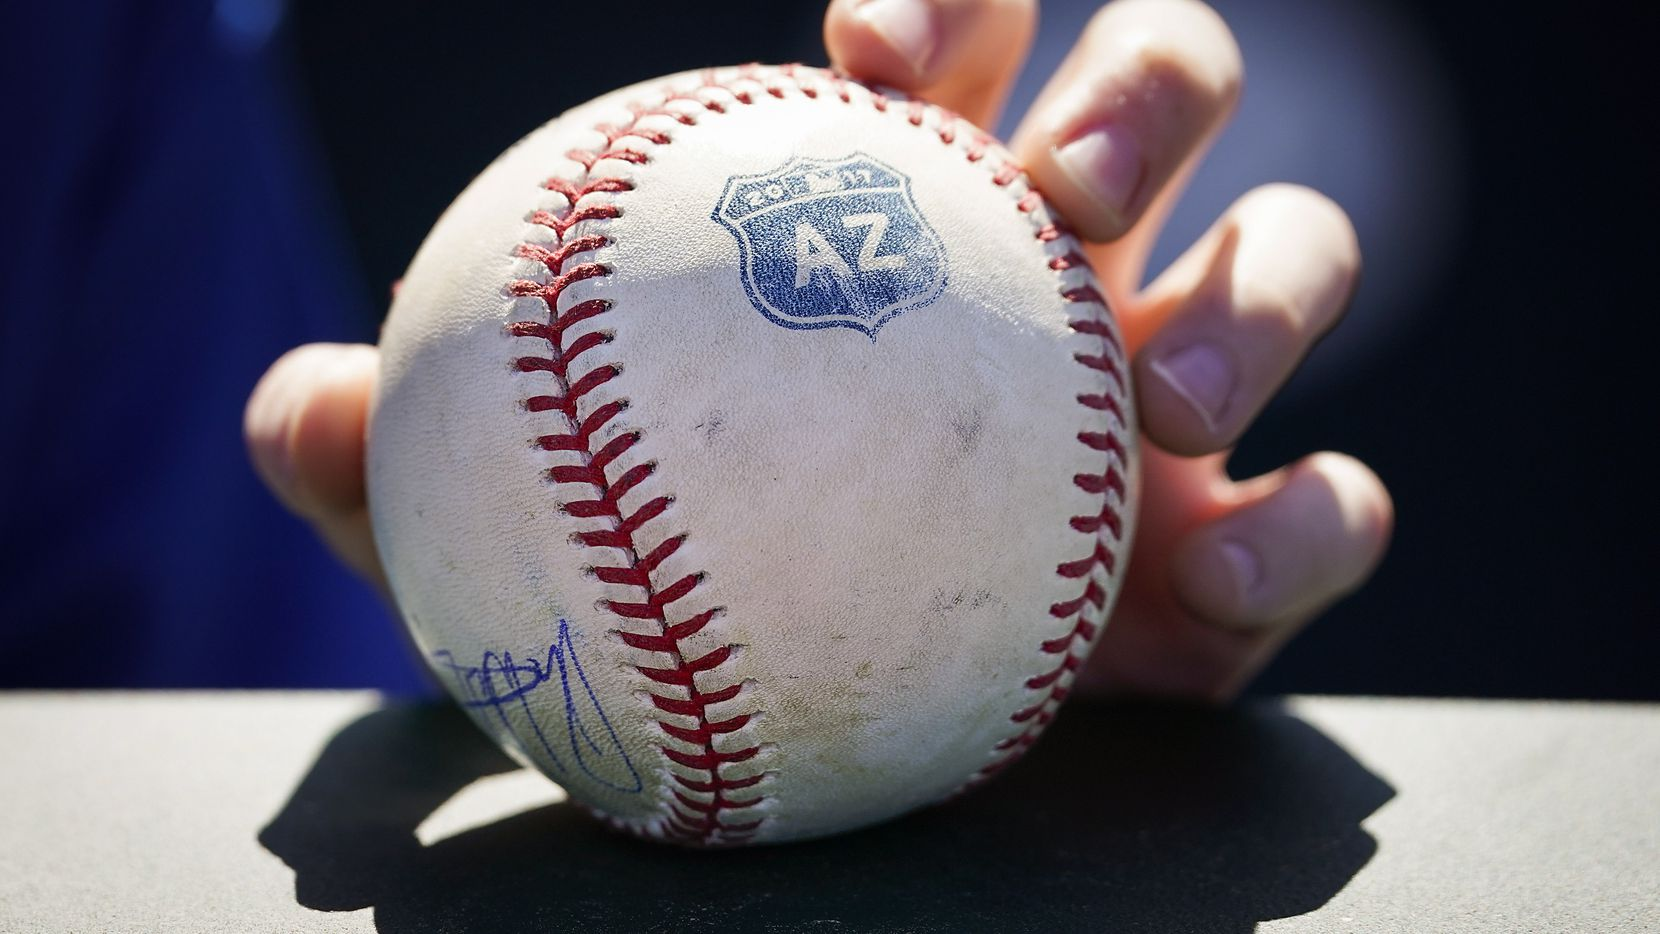 A Texas Rangers fan holds a ball hoping for autographs before a spring training game against the Cincinnati Reds at Goodyear Ballpark  on Monday, Feb. 24, 2020, in Goodyear, Ariz.